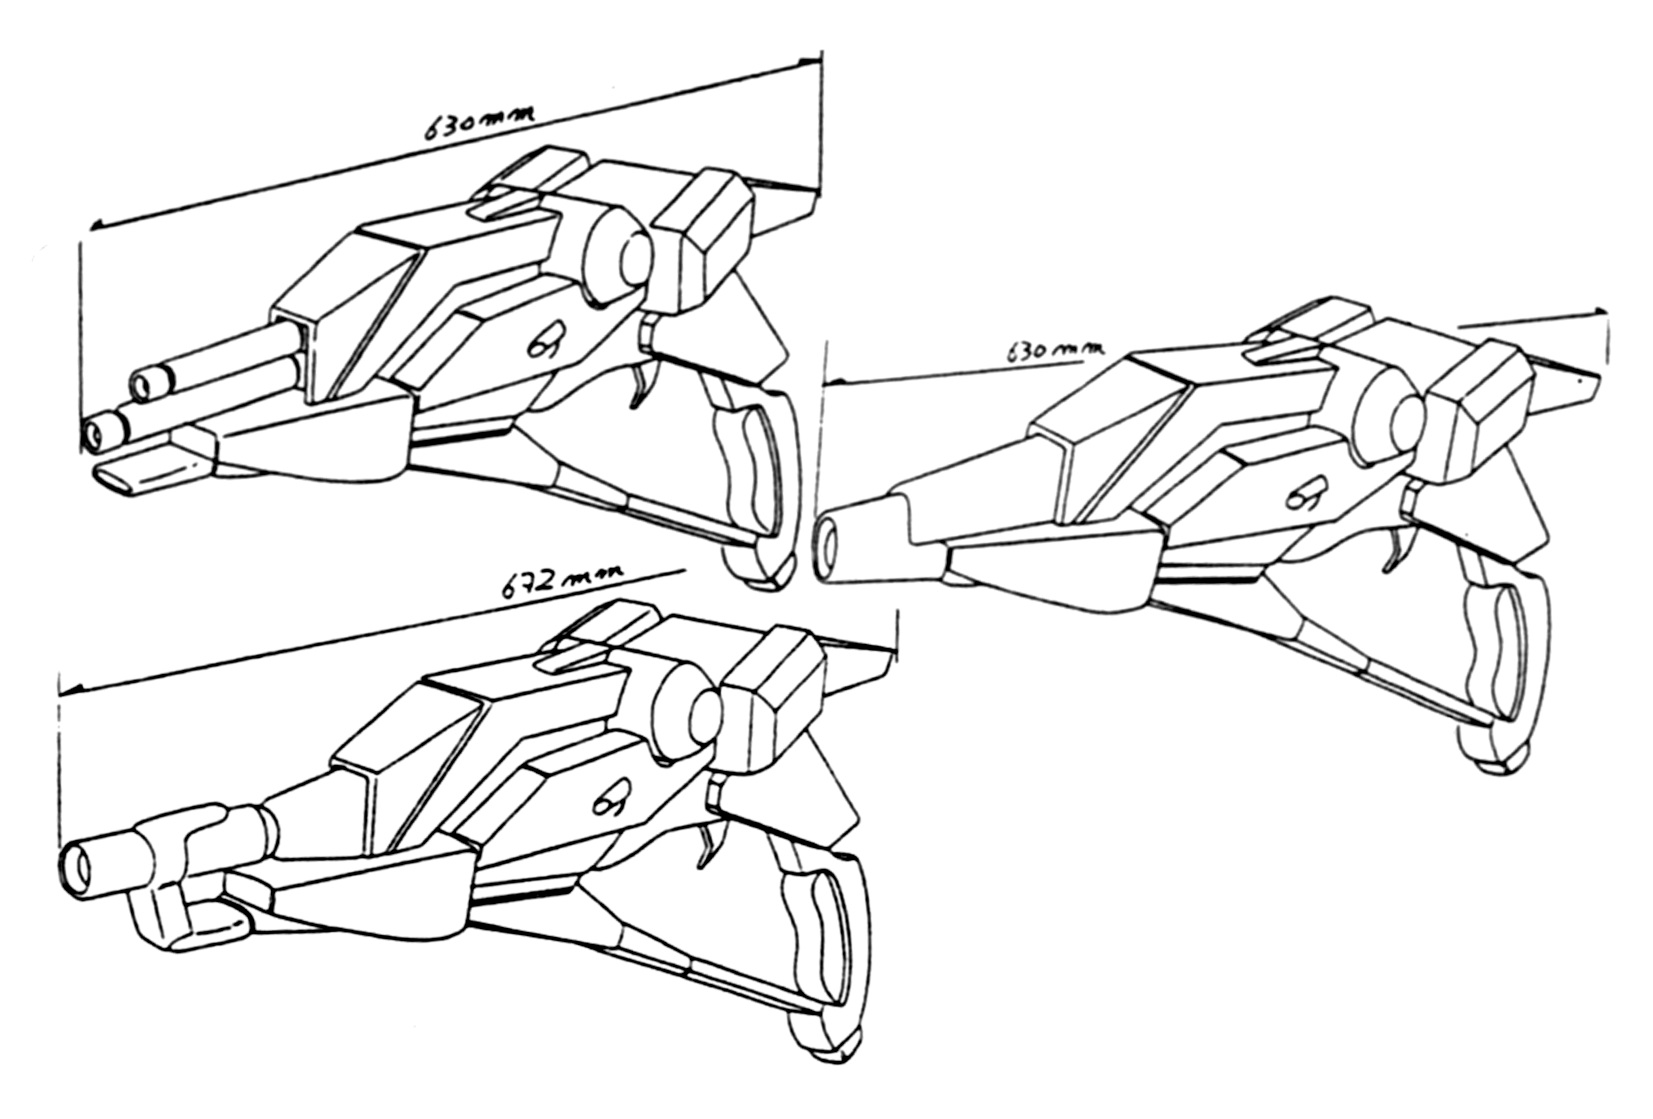 LL-8 Laser Weapons 1